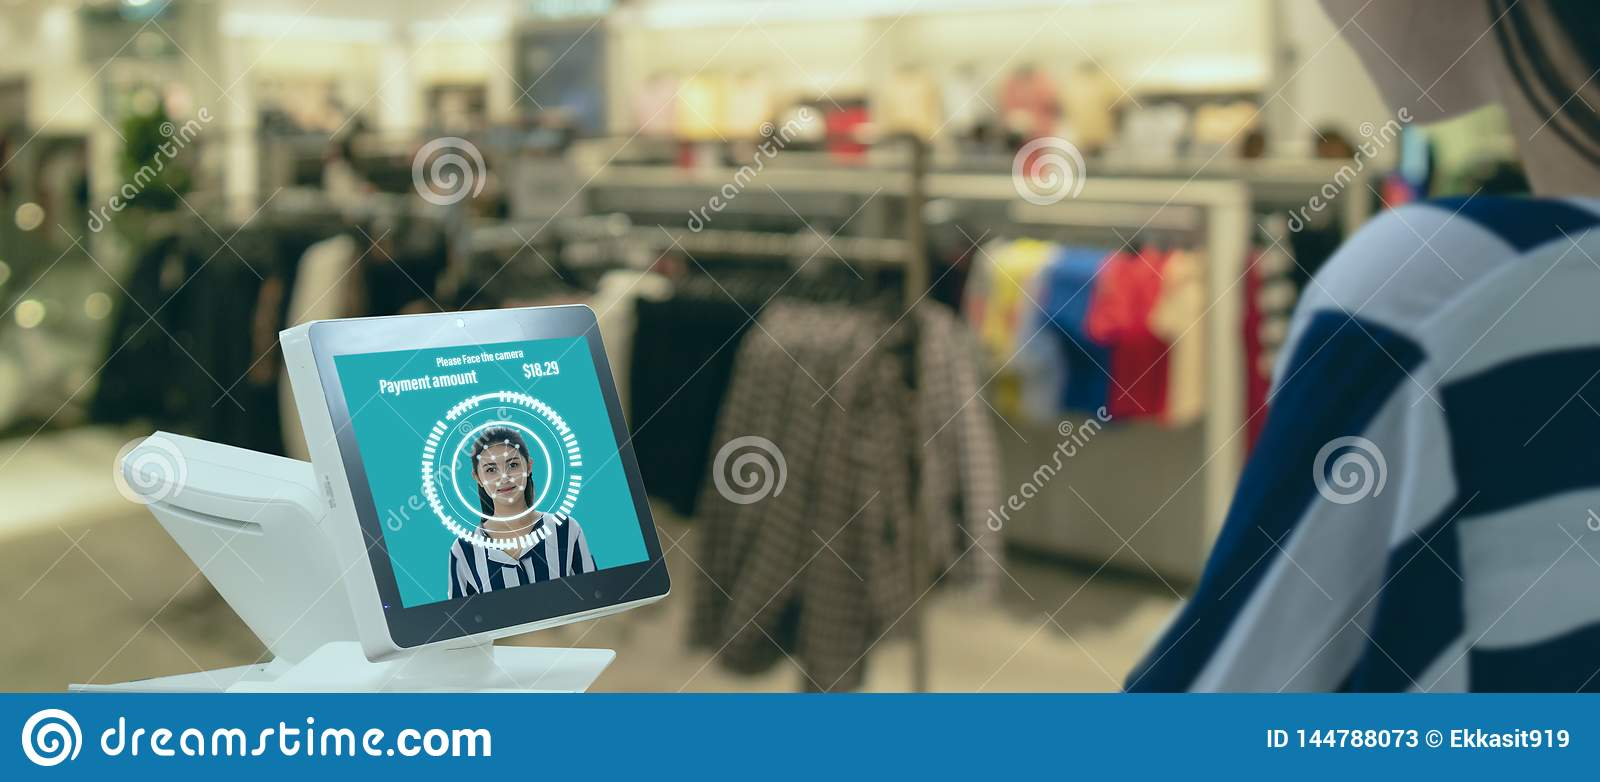 Smart retail in futuristic iot technology  marketing concepts,customer use face recognite application to login to system for buy,s